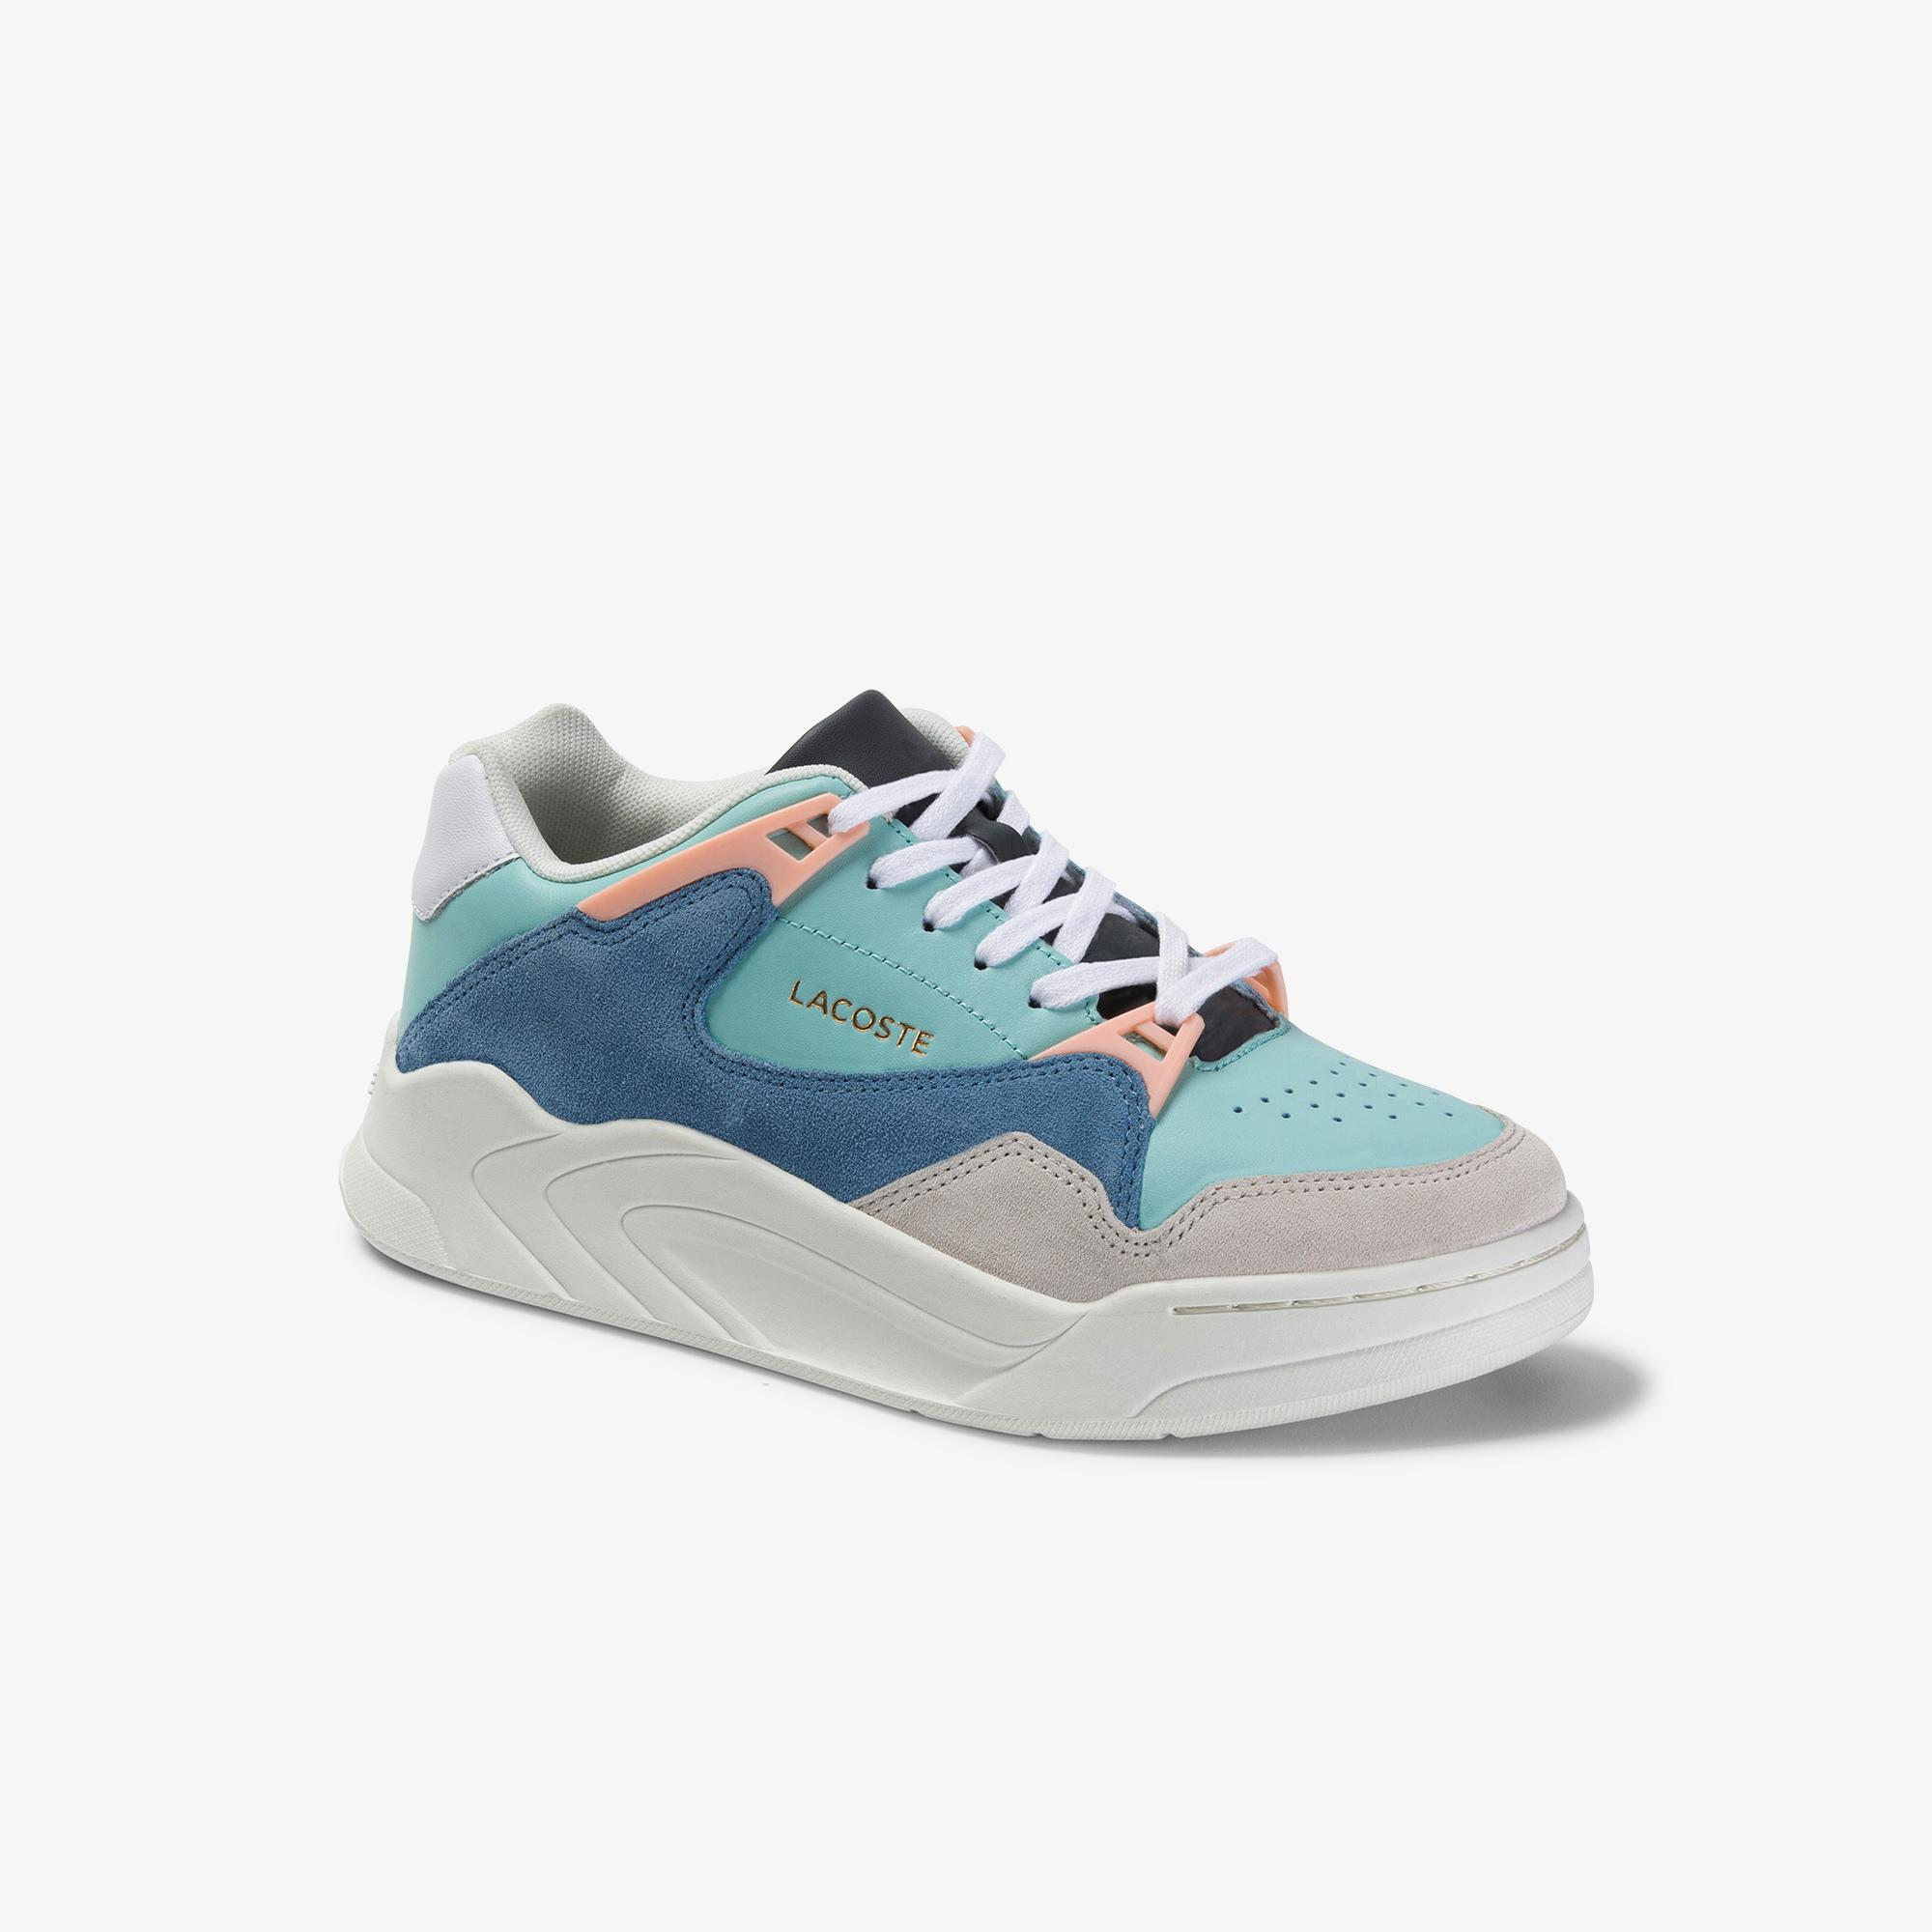 Lacoste Court Slam 120 4 US Women's Sneakers